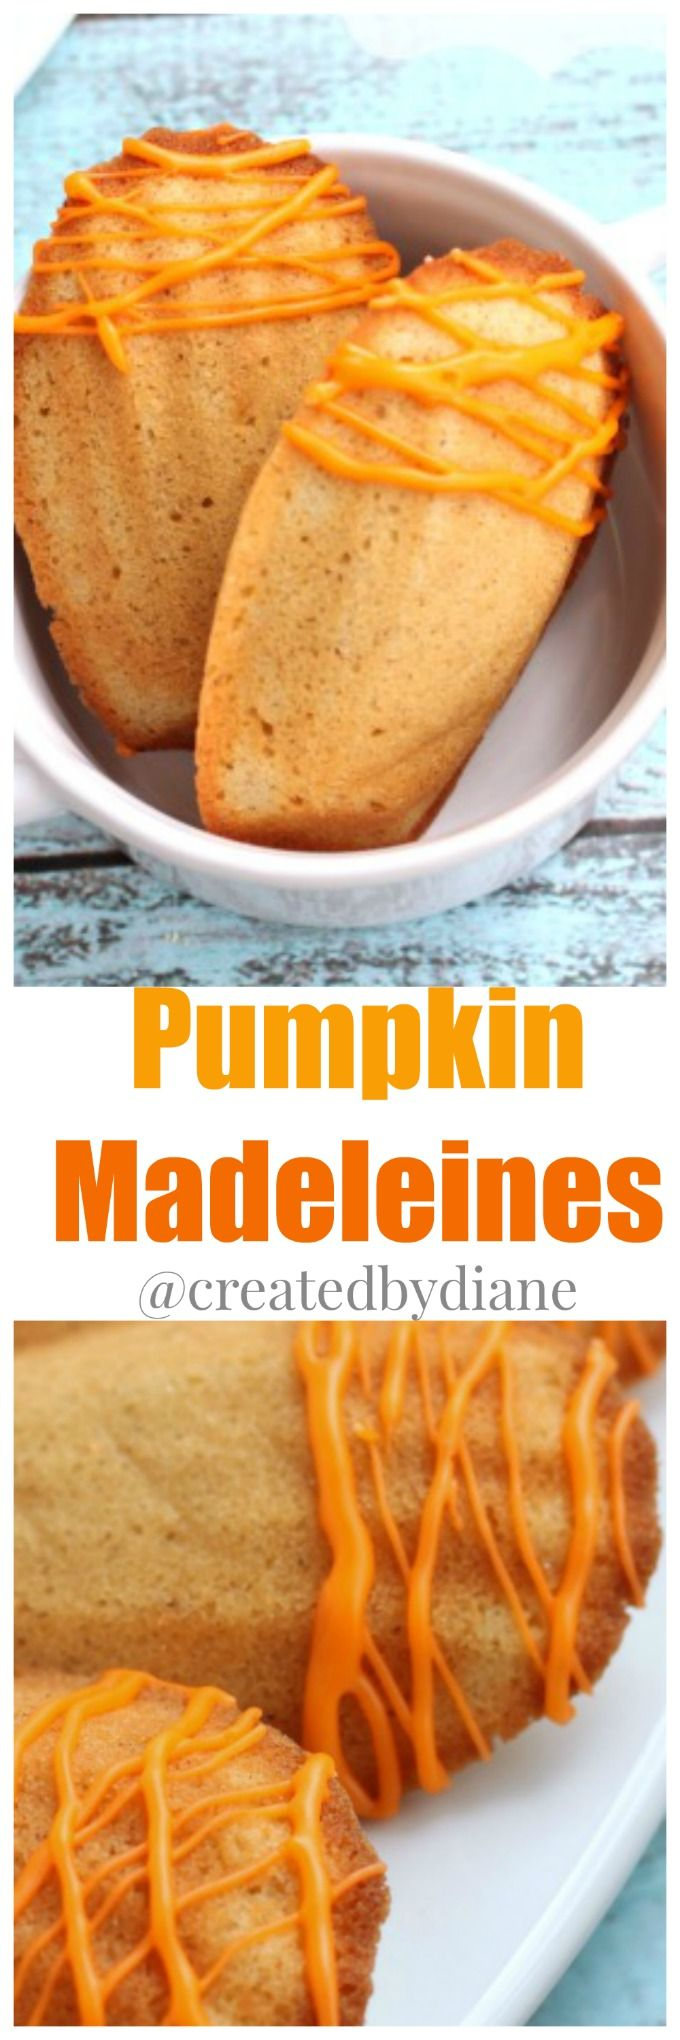 These delicious Madeleines are drenched with pumpkin flavor. They are hard to resist for any pumpkin lover. Perfect for dessert, breakfast or well...anytime